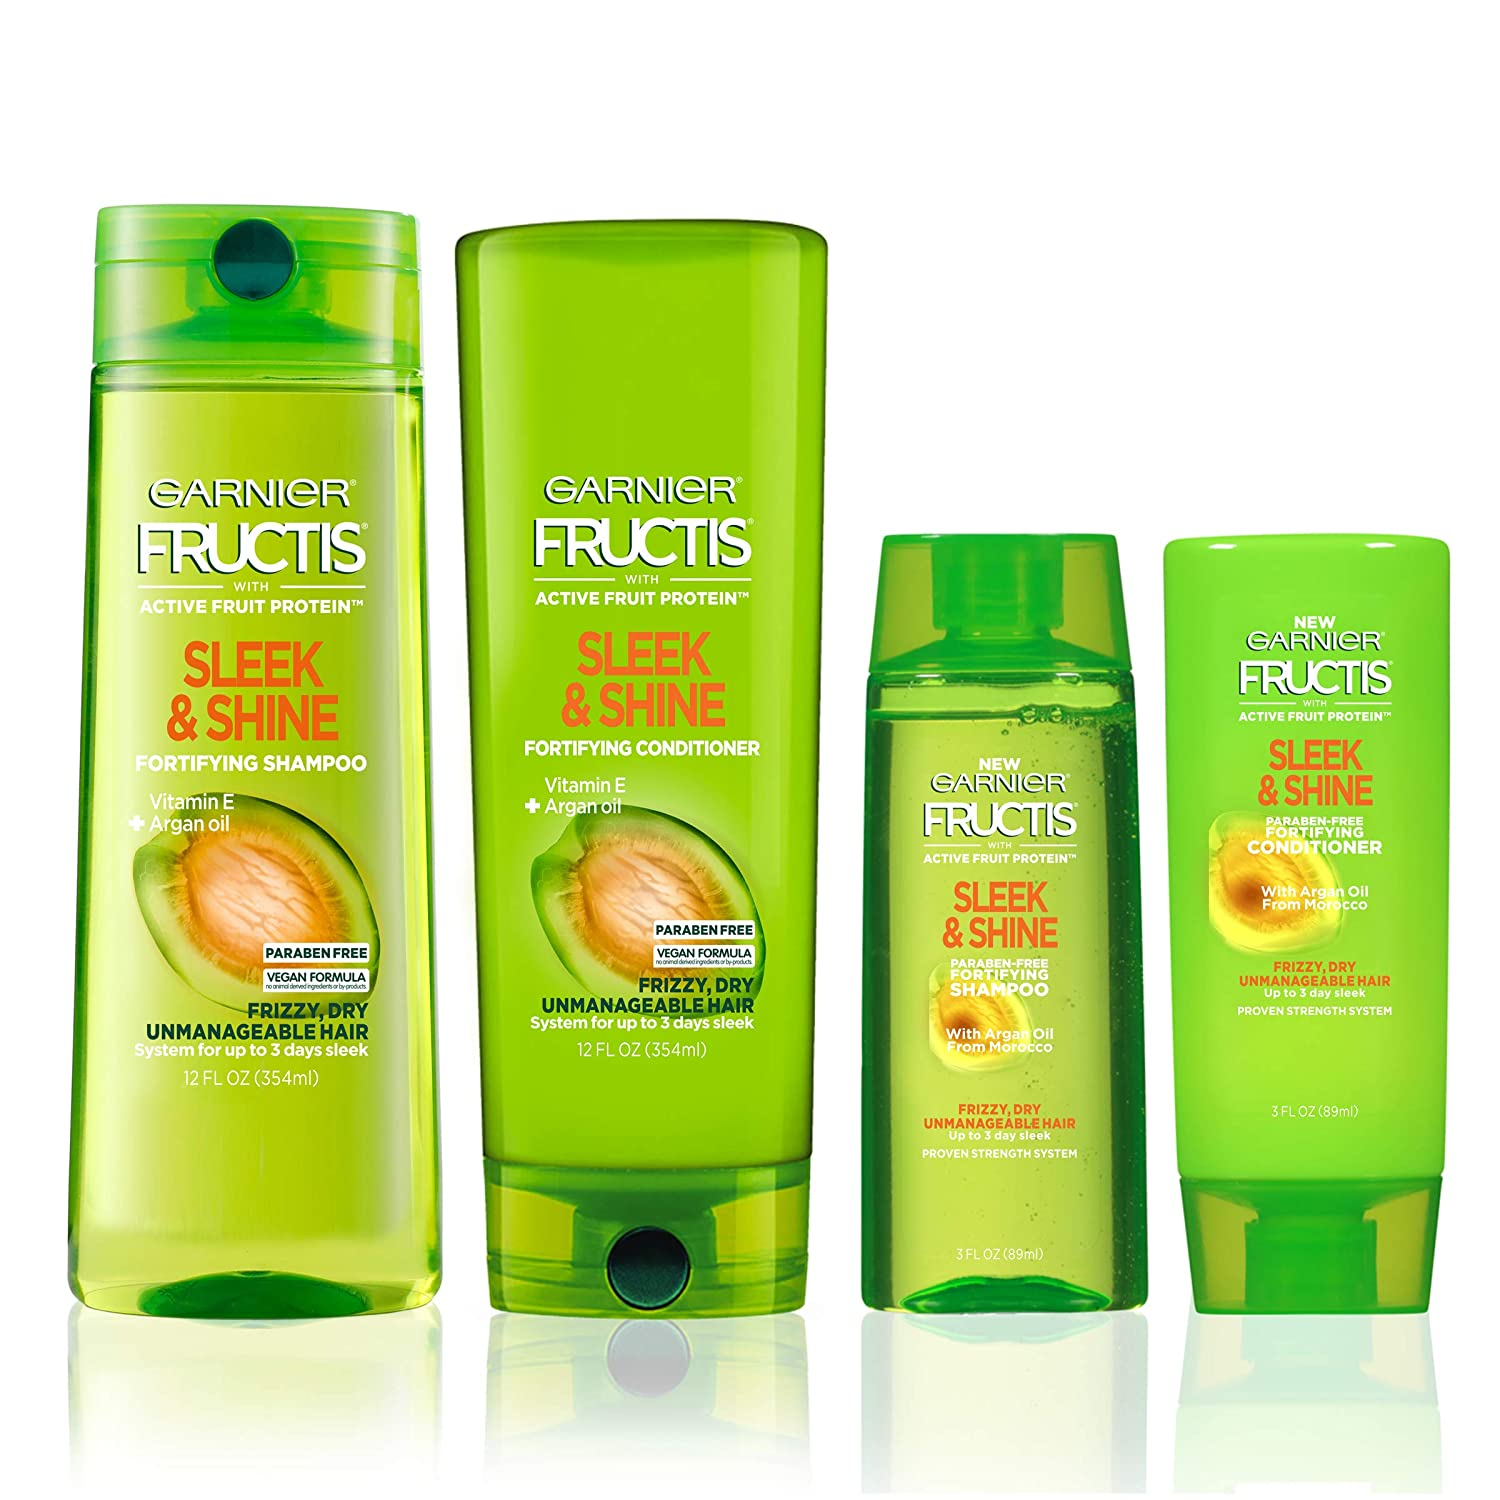 Garnier Hair Care Fructis Sleek & Shine Travel Size Shampoo and Conditioner, For Frizzy, Dry Hair, Made with Argan Oil from Morocco, Paraben Free Formula, 1 Kit